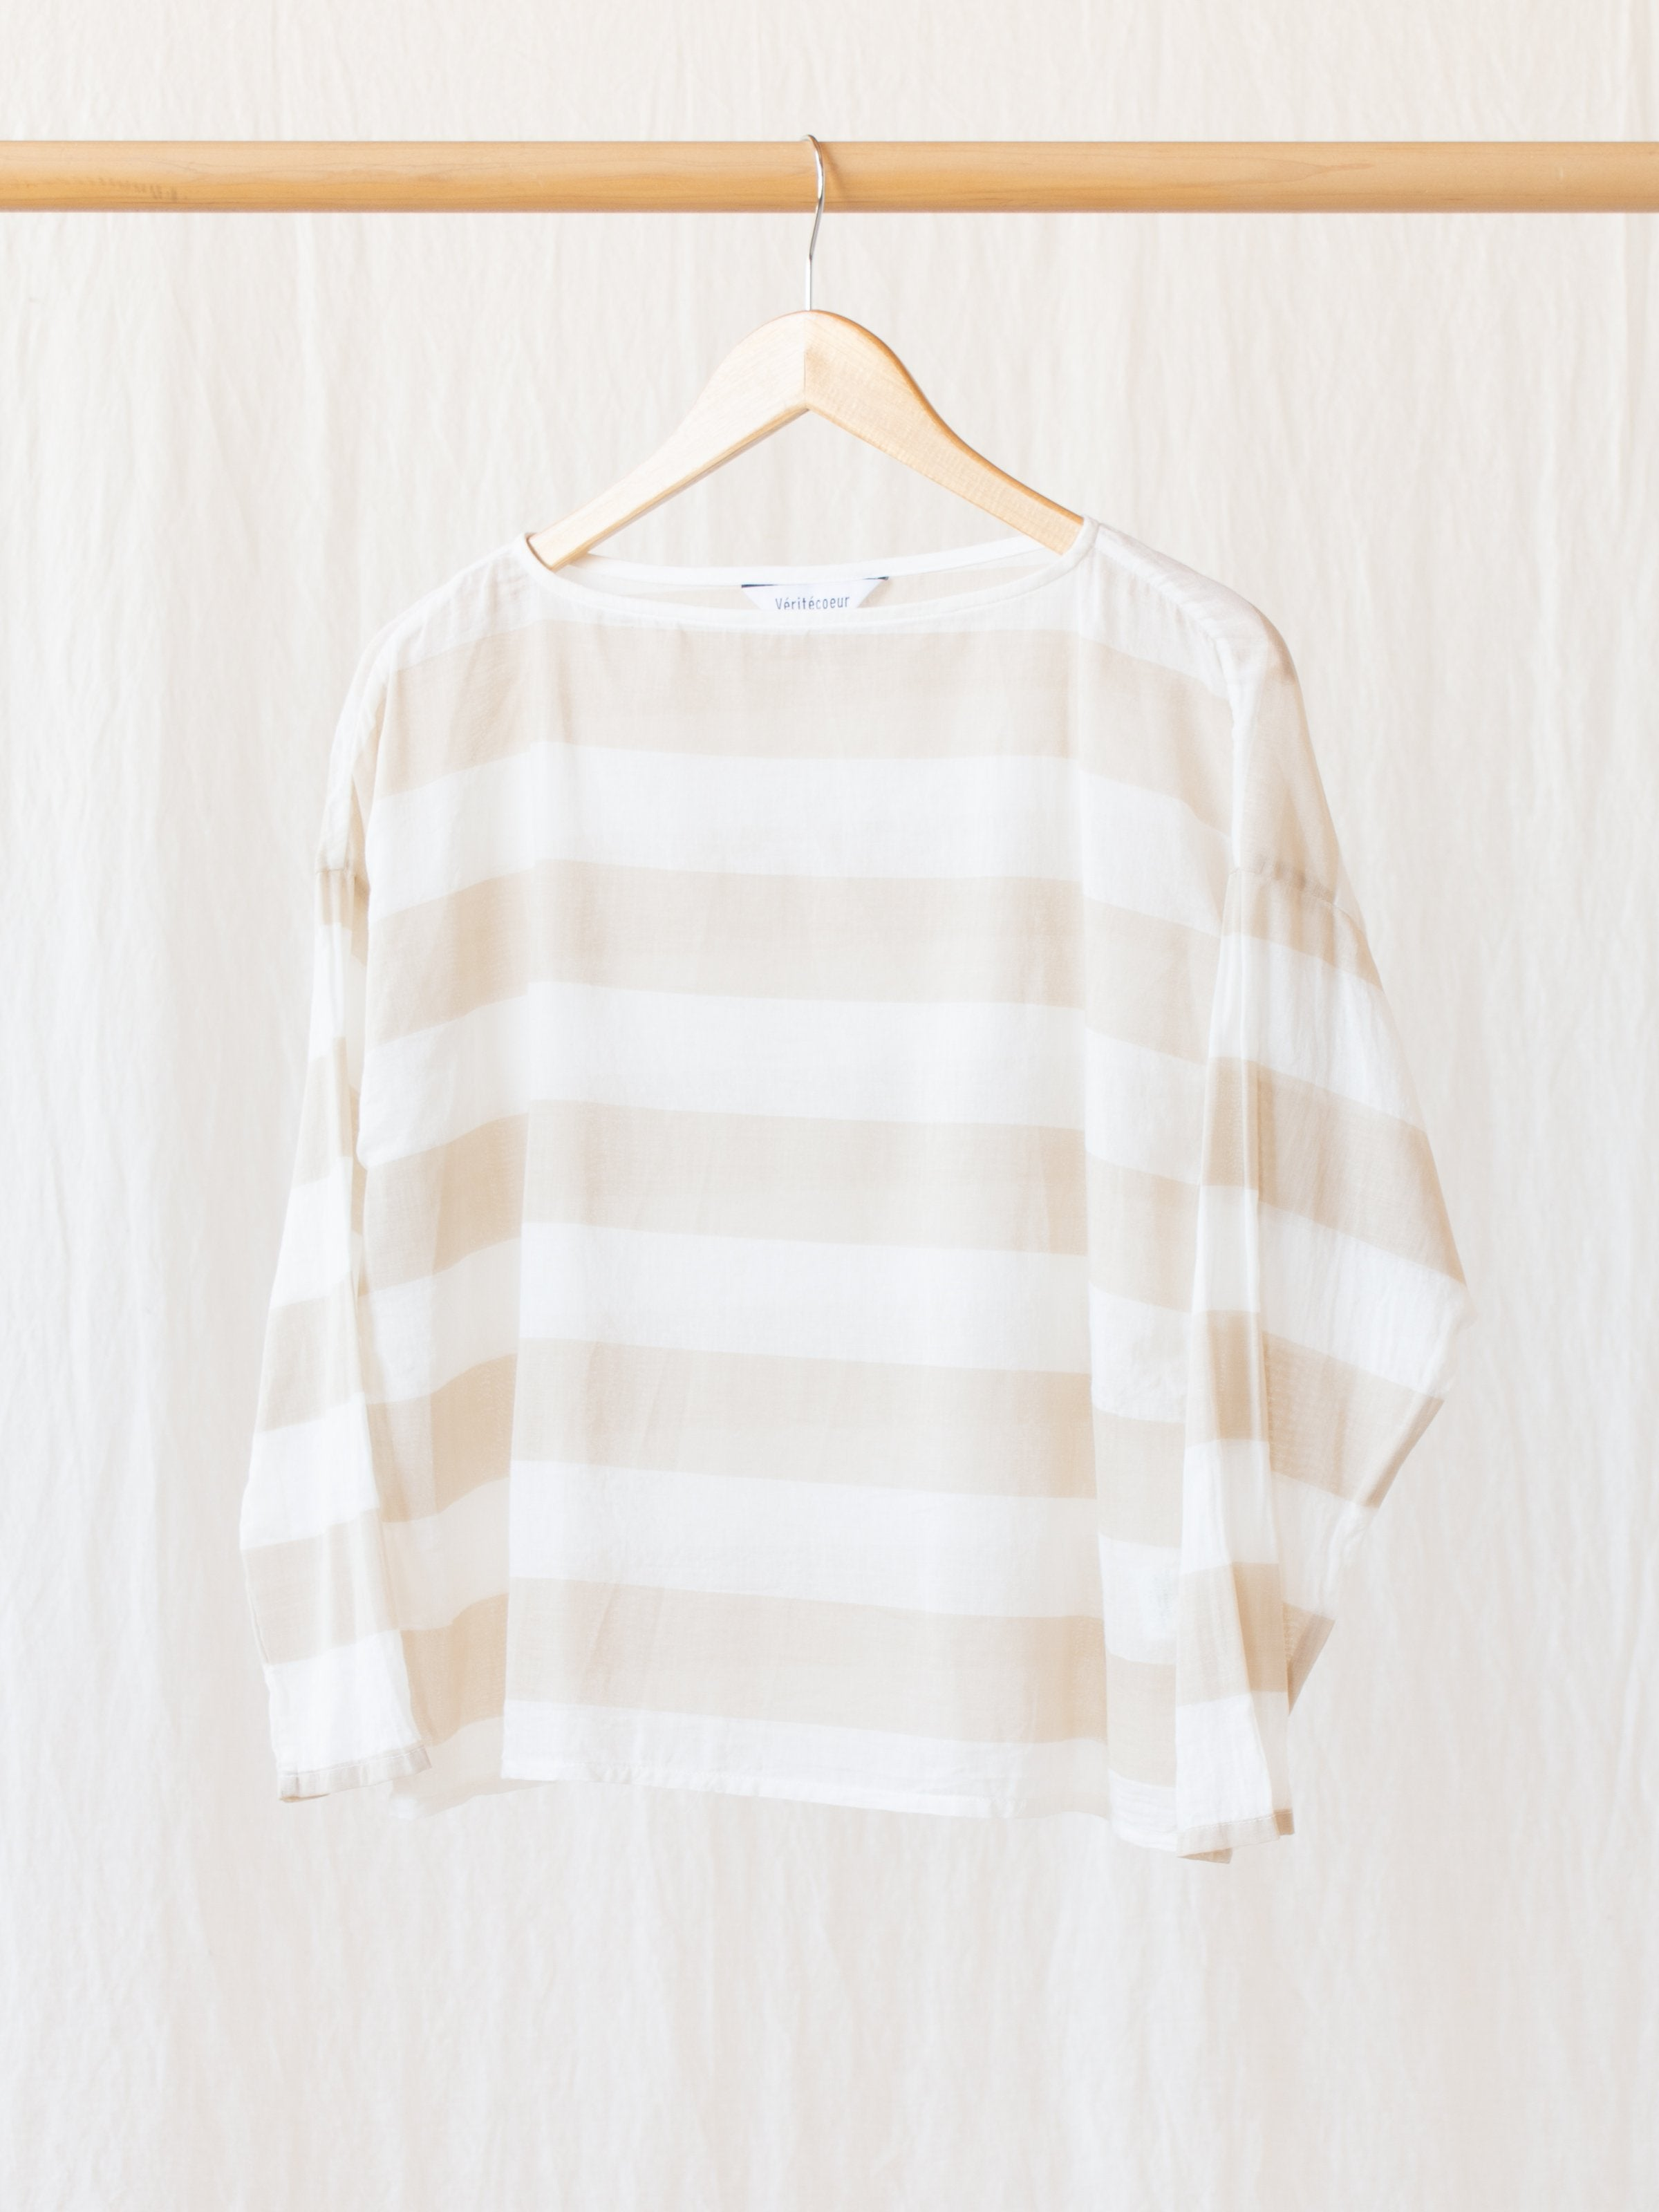 Namu Shop - Veritecoeur Cotton Silk Striped Top